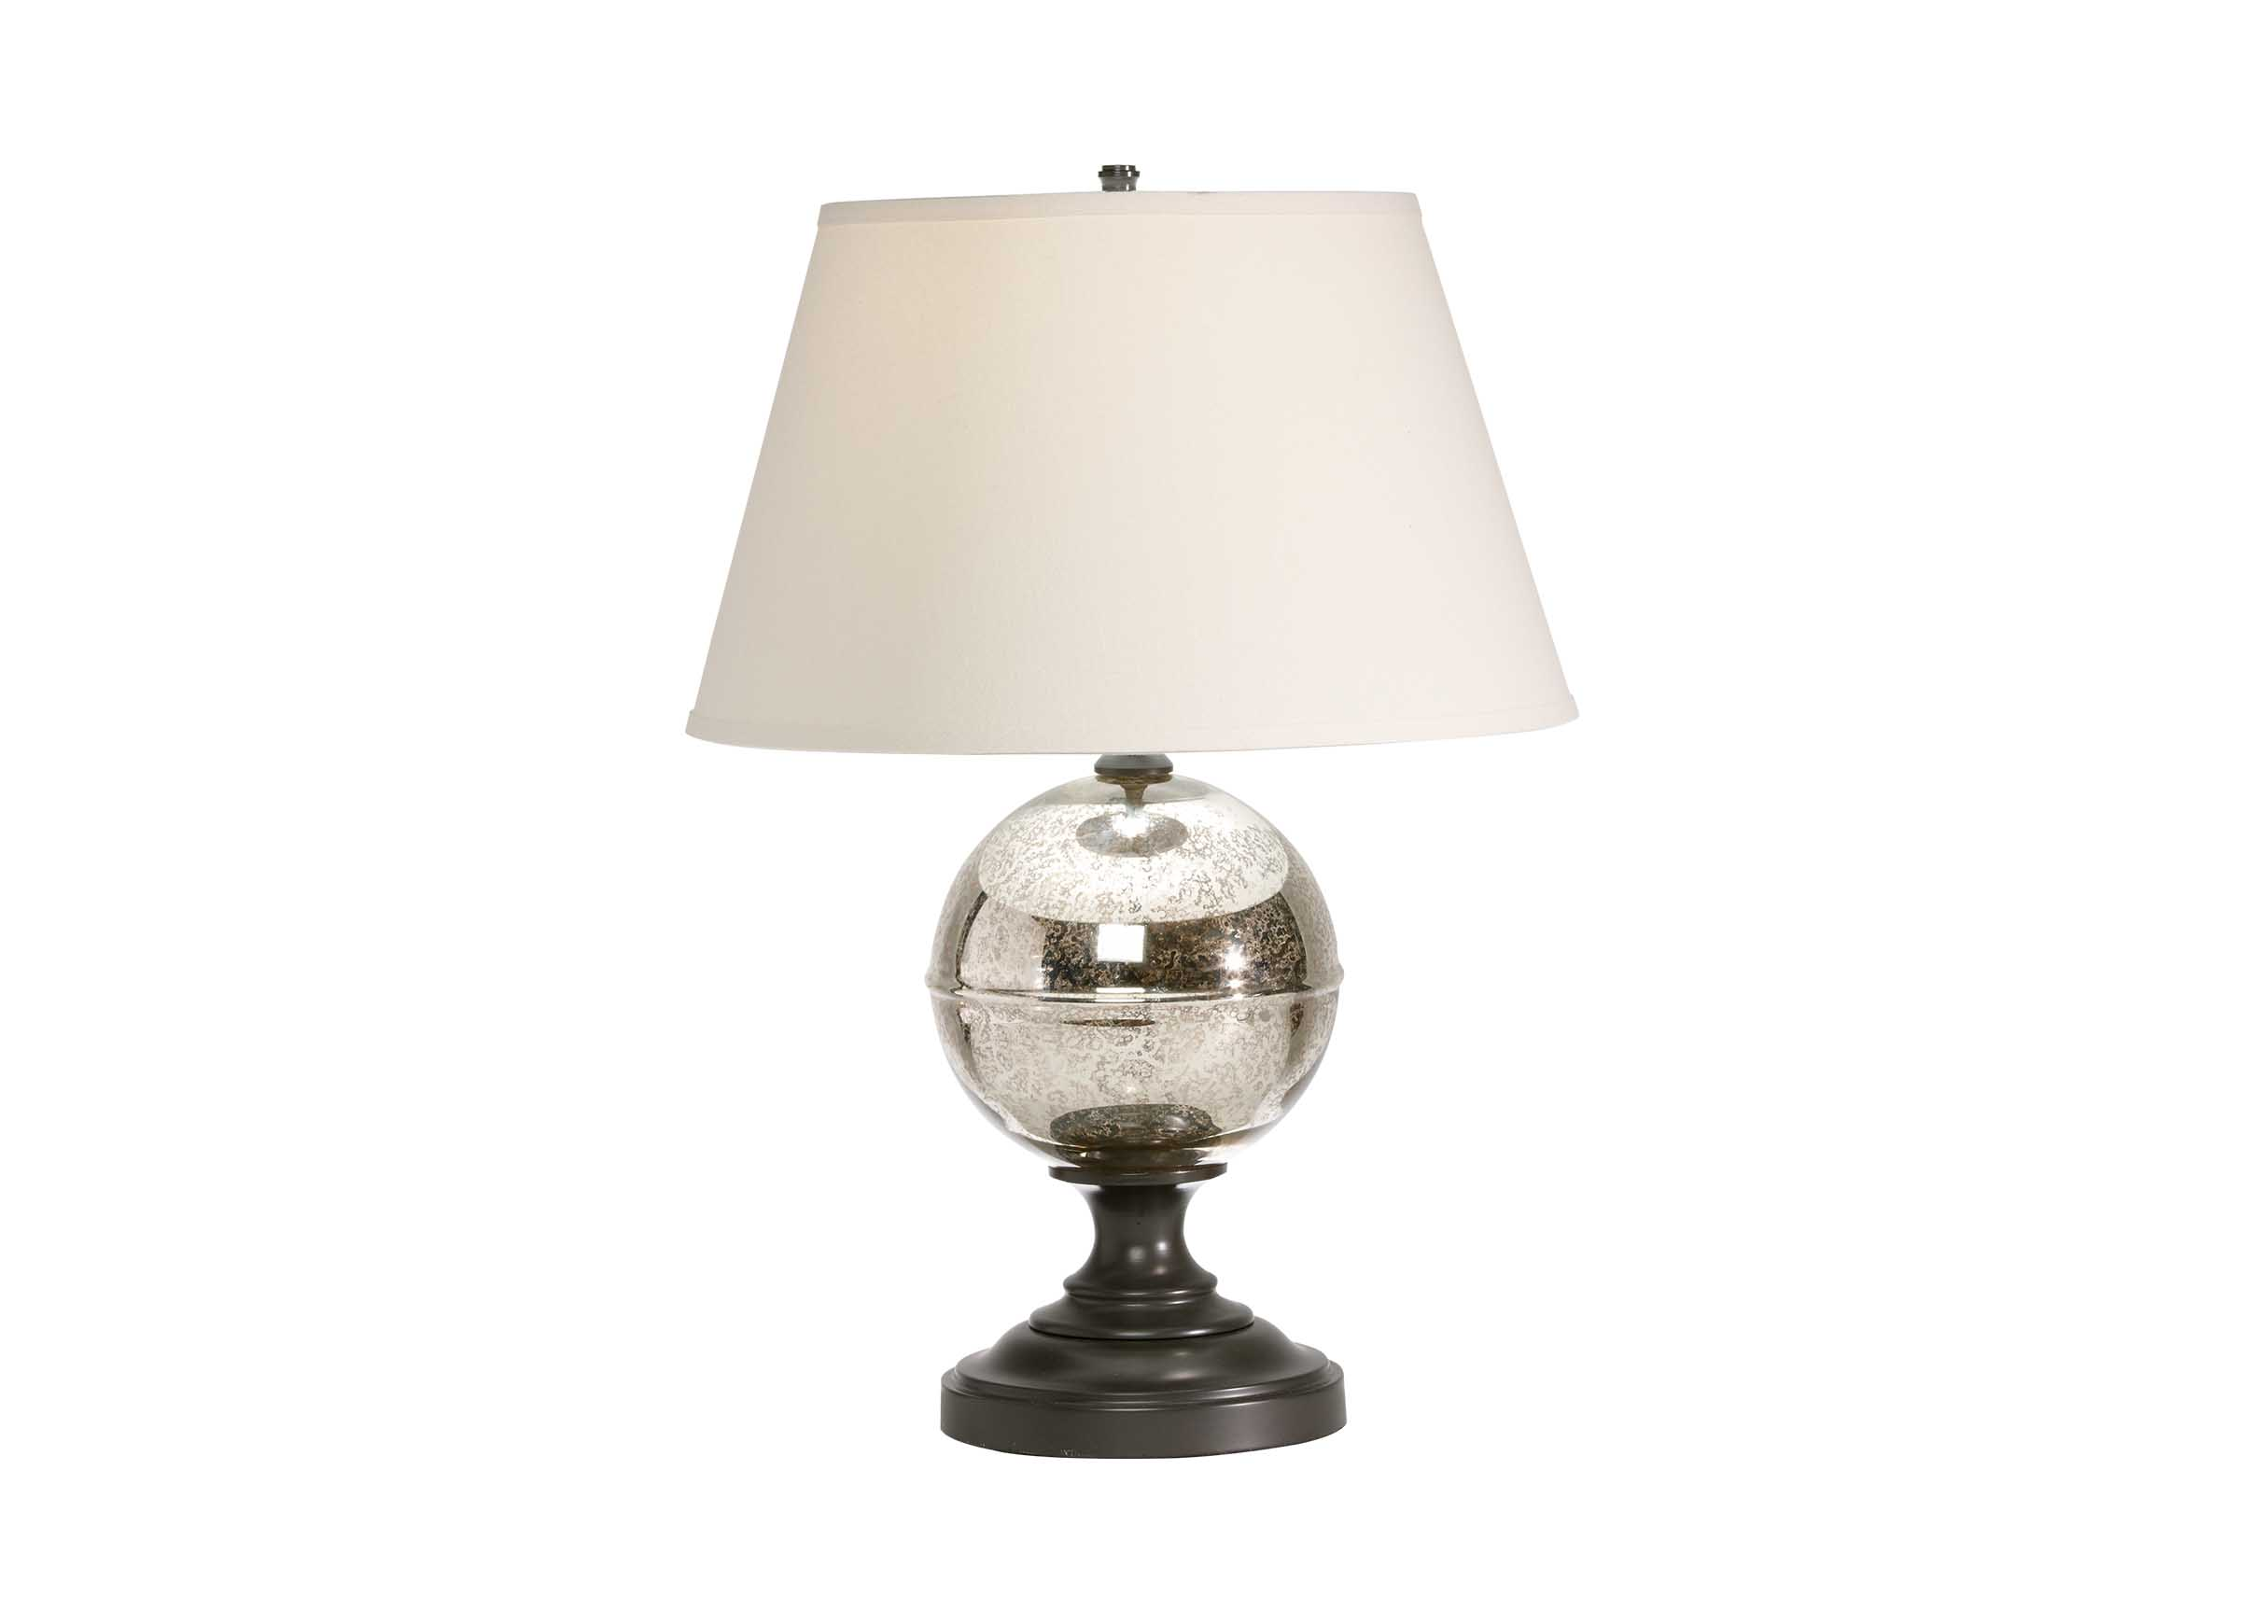 Images null & Glass Orb Table Lamp | TABLE LAMPS | Ethan Allen